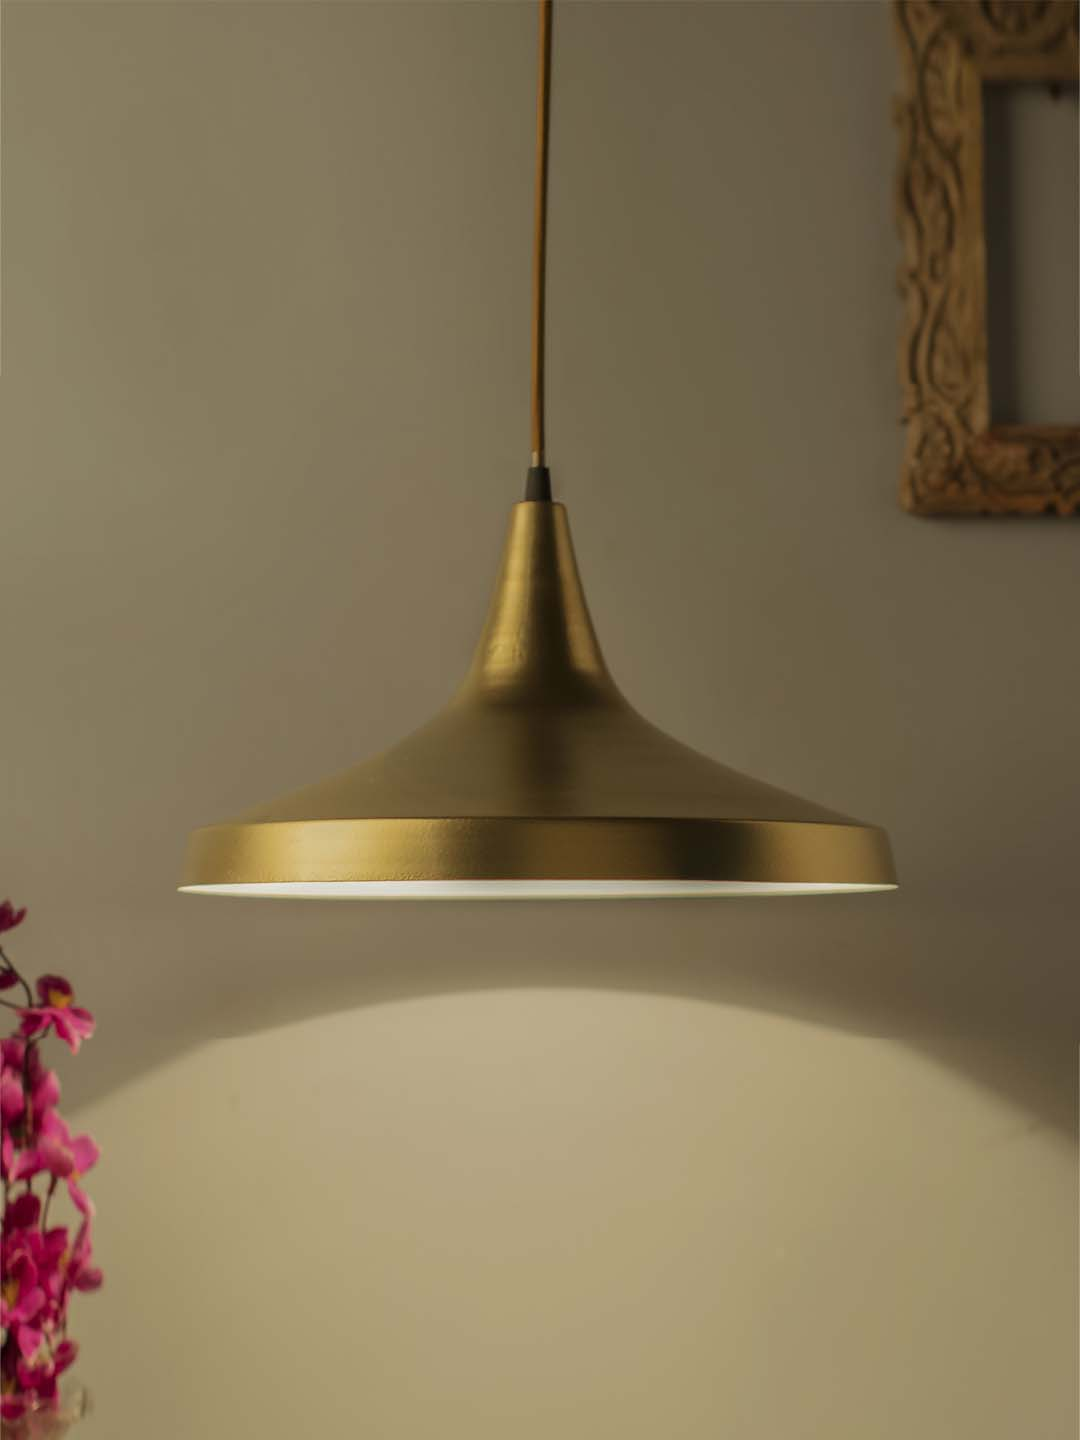 Homesake Golden Metal Loft Lamp Shade Shaped Hanging Lamp Set Of 1 From Homesake At Best Prices On Tata Cliq